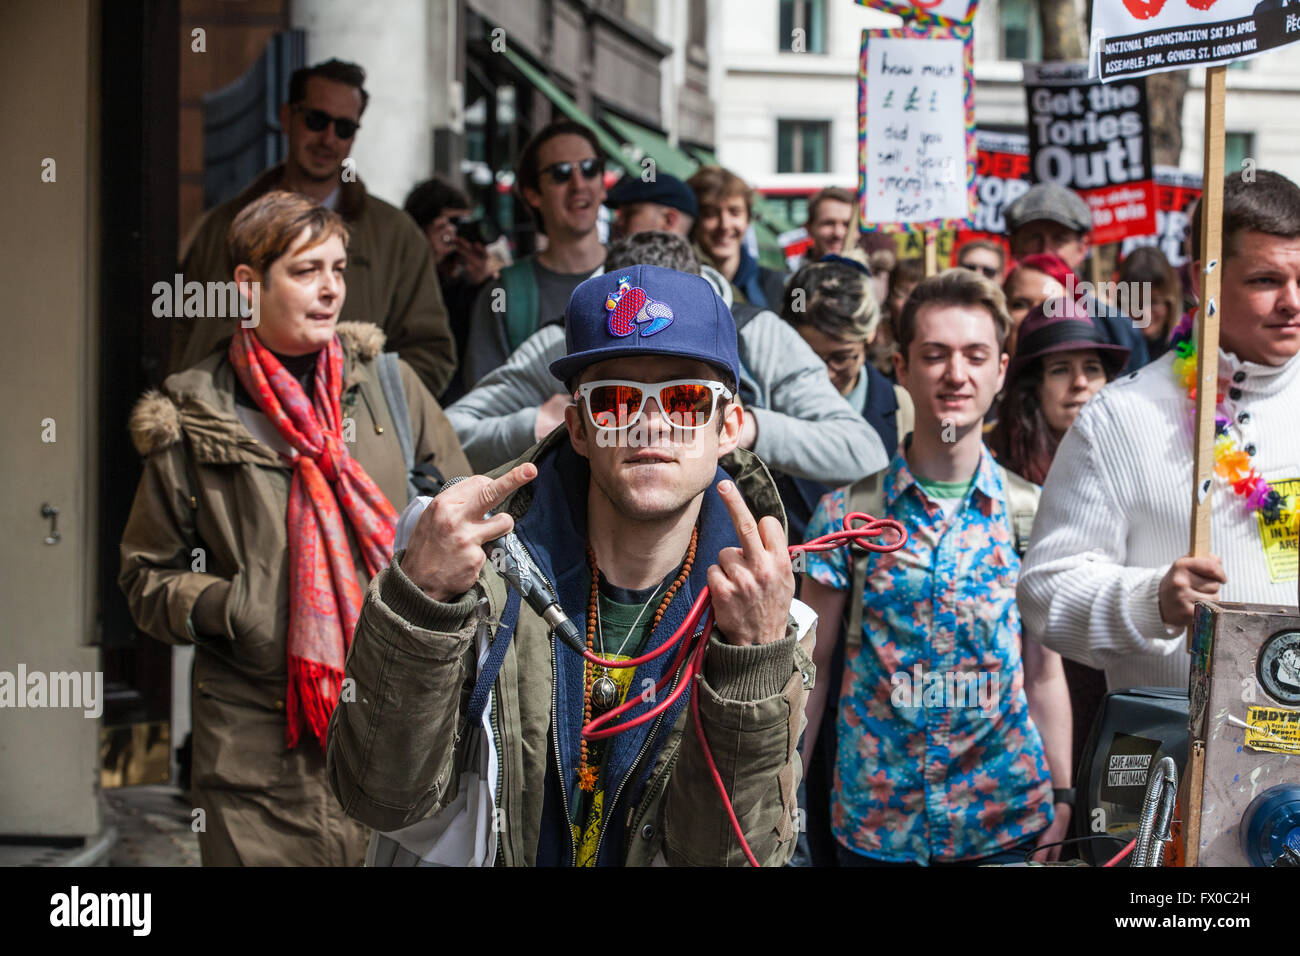 London, UK. 9th April, 2016. Protesters call on David Cameron to 'close tax loopholes or resign' following the revelations - Stock Image